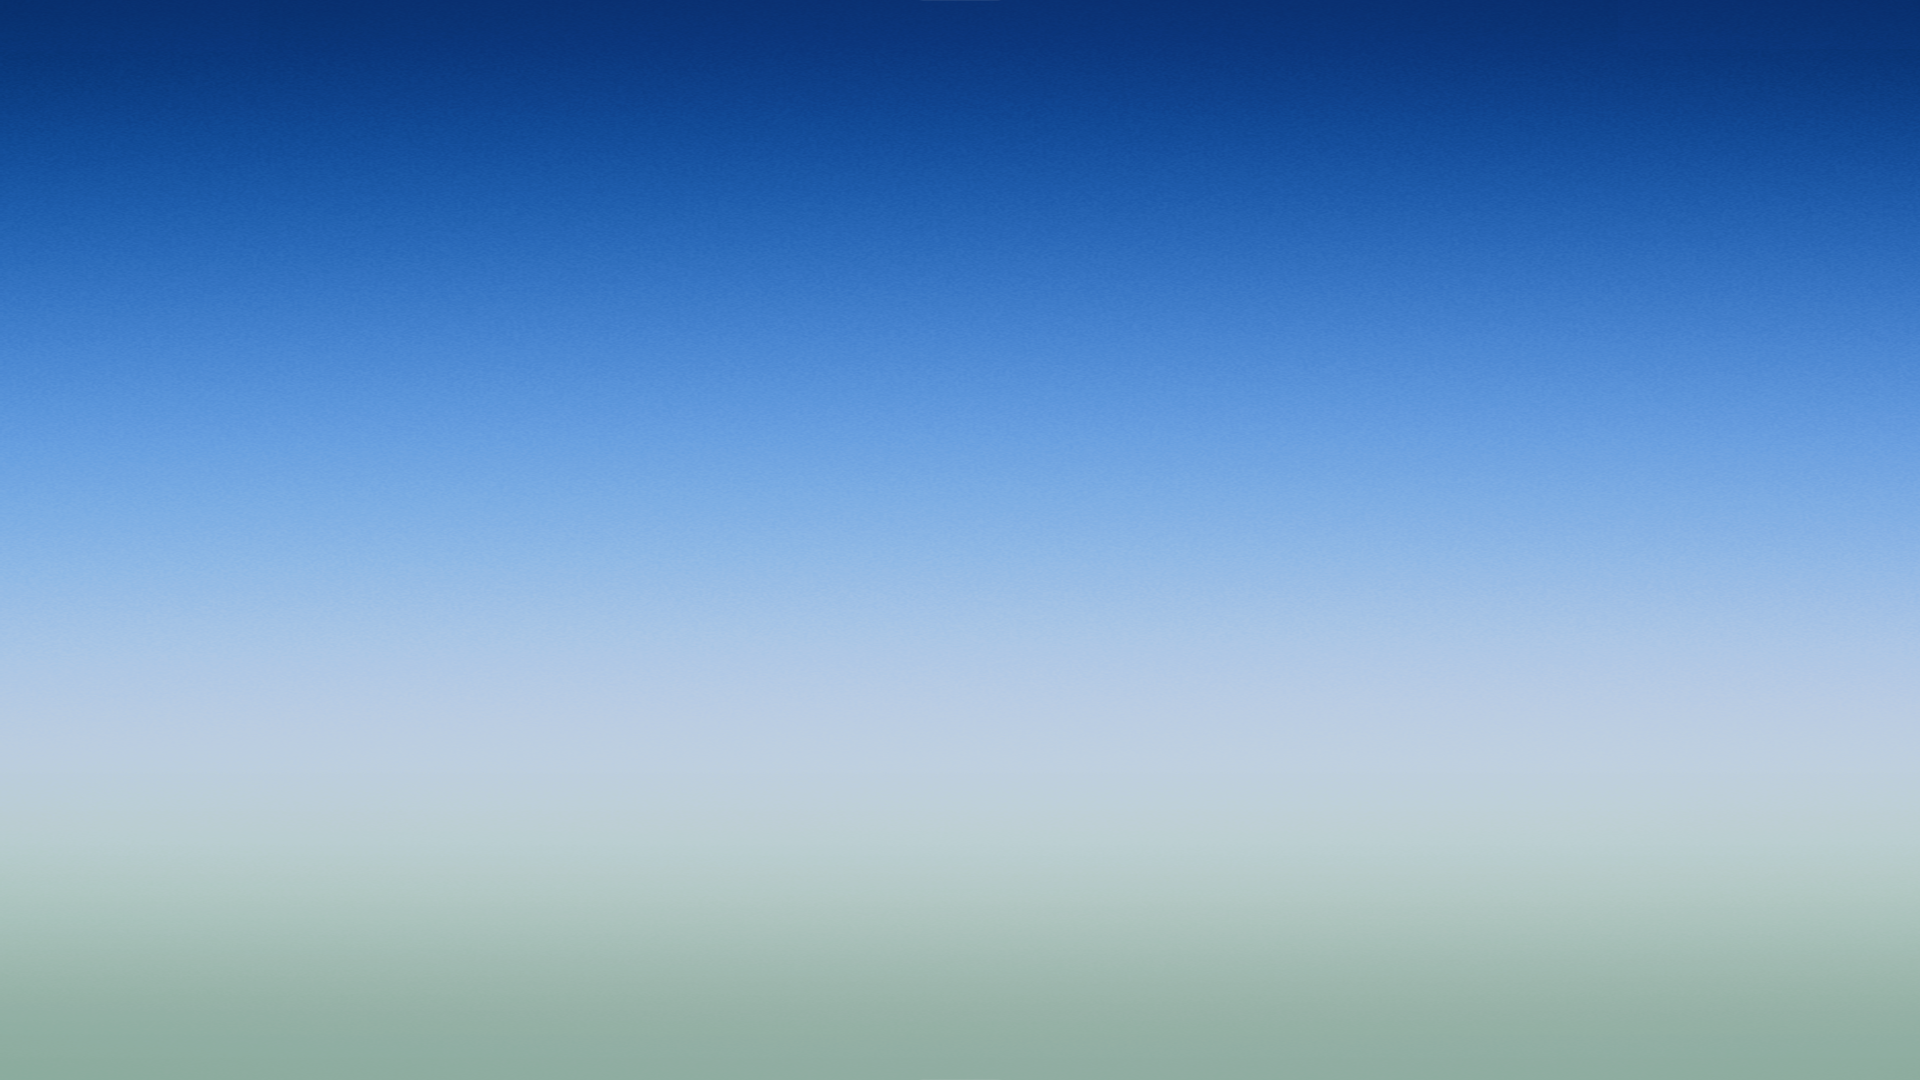 Download iOS 7 Wallpaper for Mac 1920 1080 resolution 1920x1080